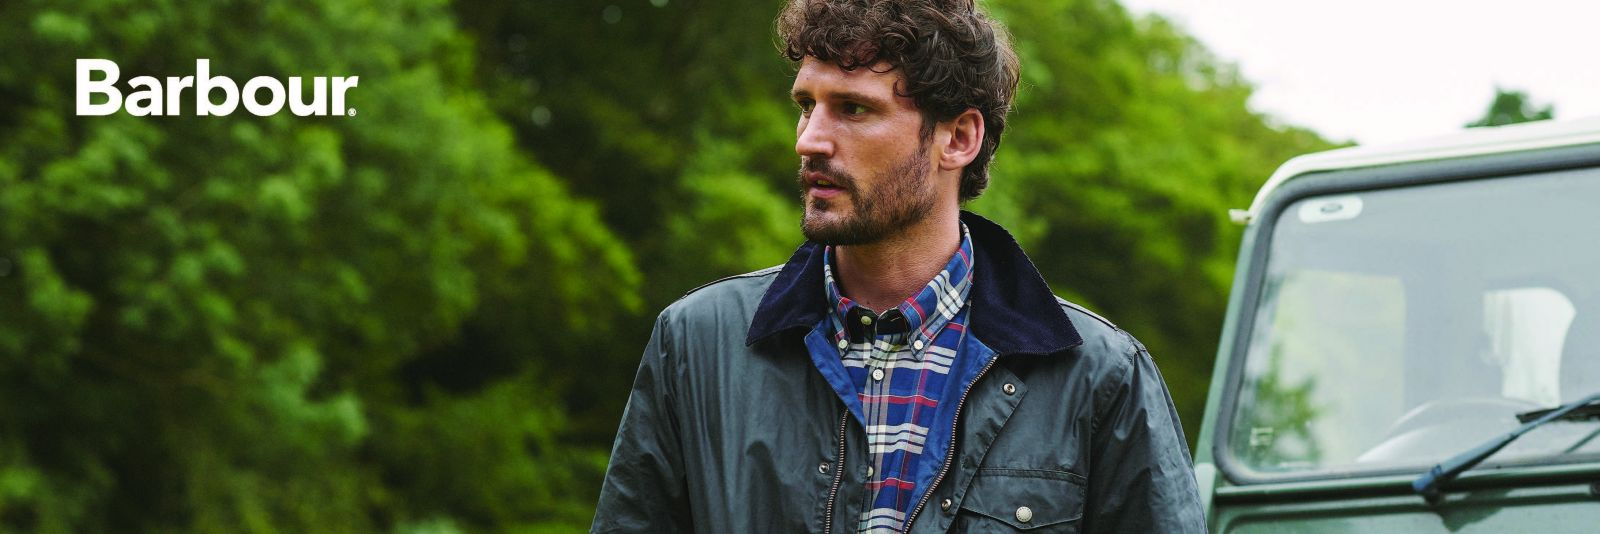 Barbour clothing collection tweedchasse